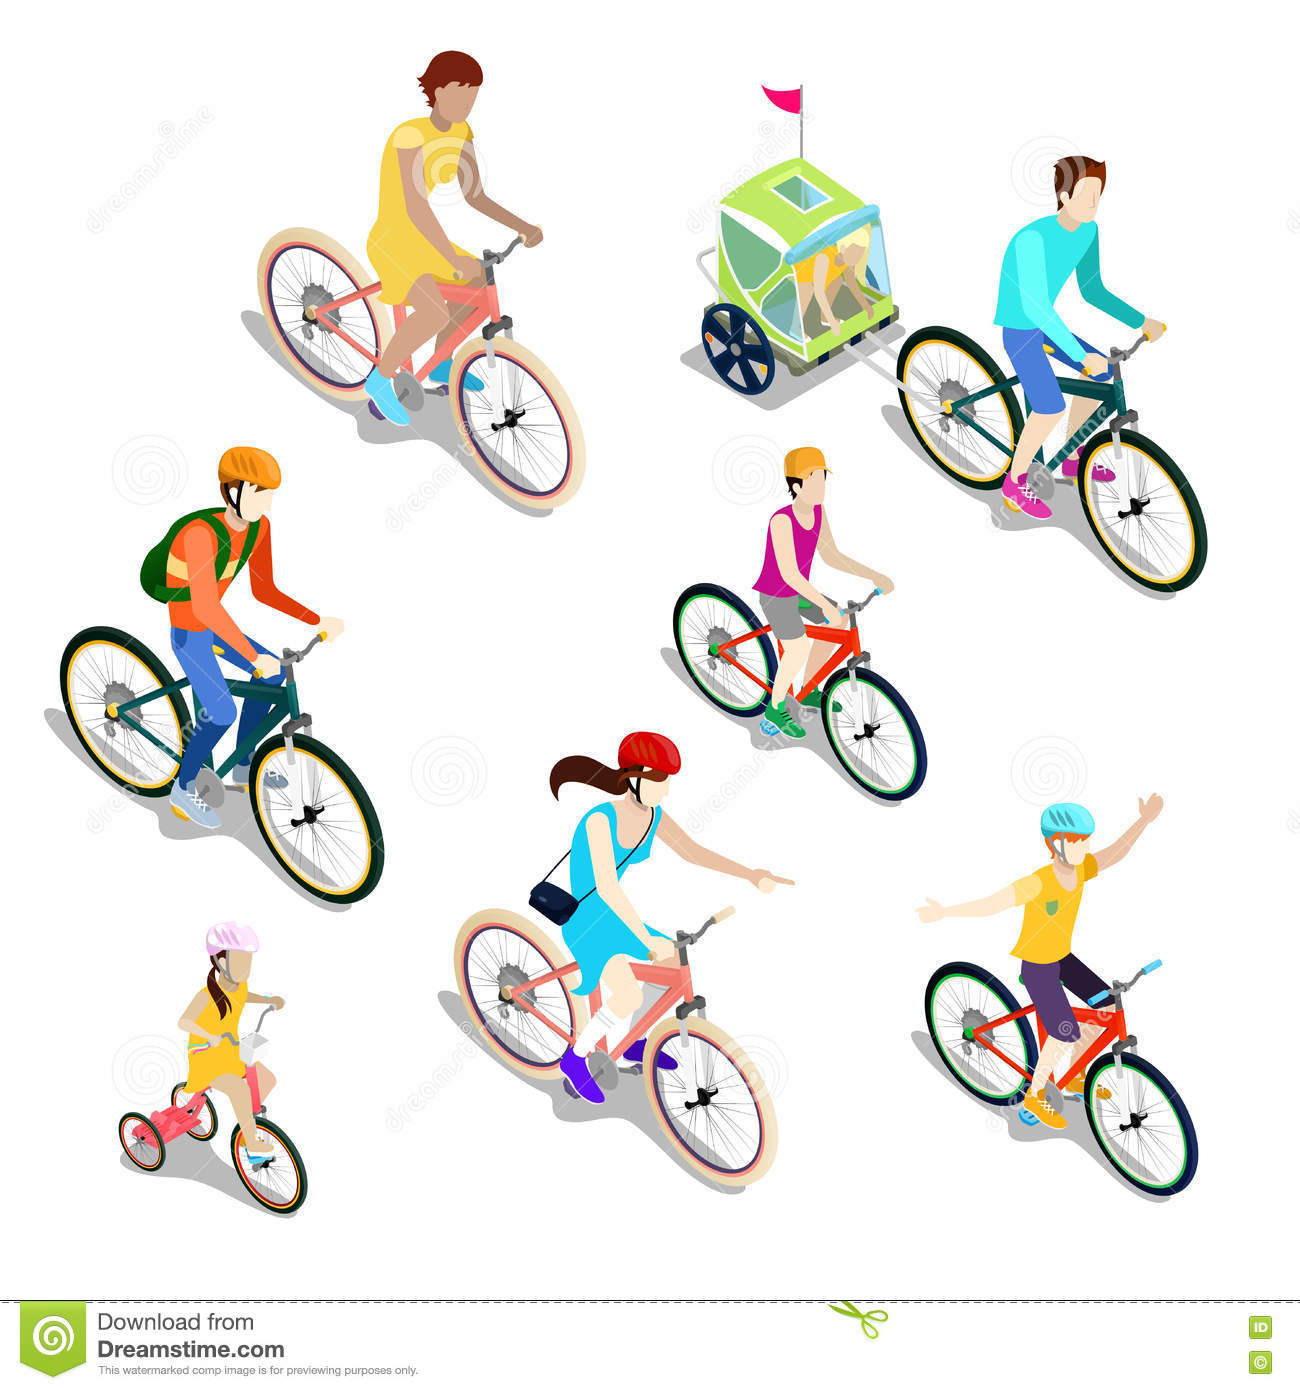 Isometric People on Bicycles. Family Cyclists.